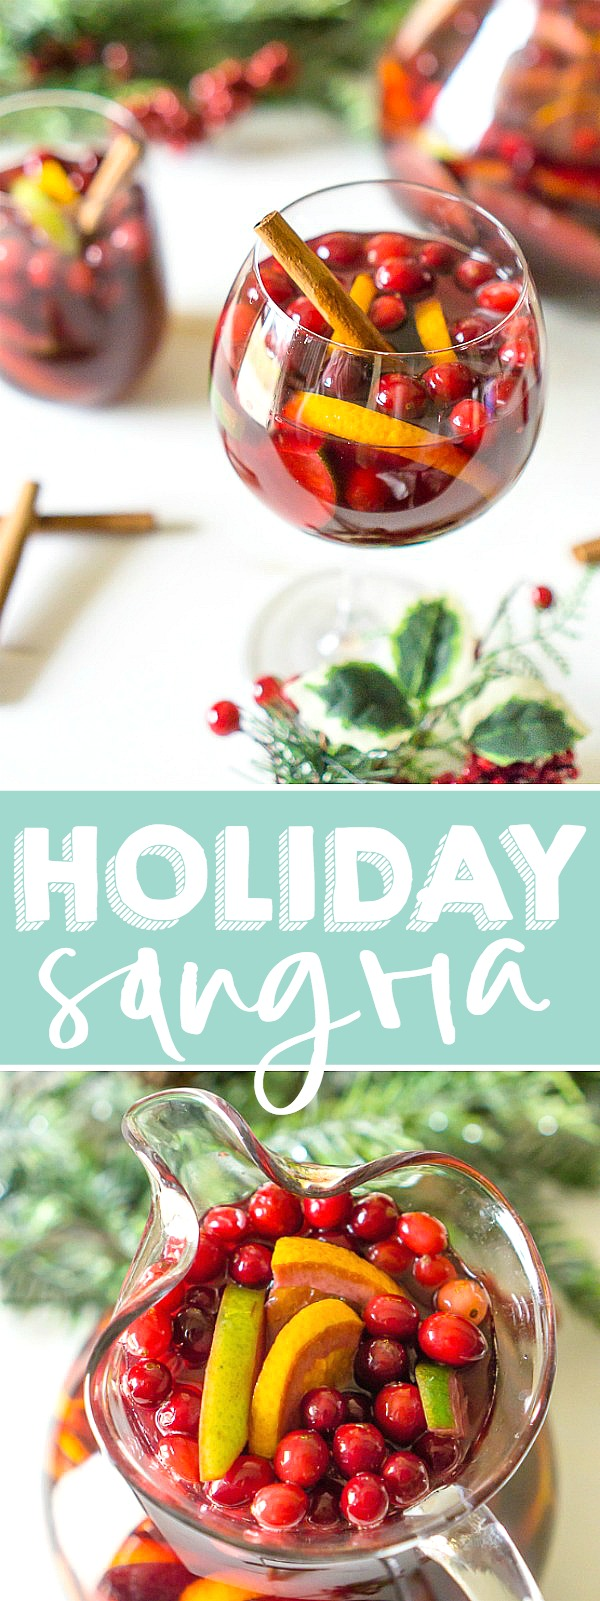 Don't forget to add a special holiday cocktail recipe to your Christmas menu this year, like this Citrus Cranberry Holiday Sangria! Filled with cranberries, citrus, pears, a subtle hint of cinnamon, and sweet red wine, you'll love every sip of this red sangria recipe! | THE LOVE NERDS #redchristmassangria #punchcocktail